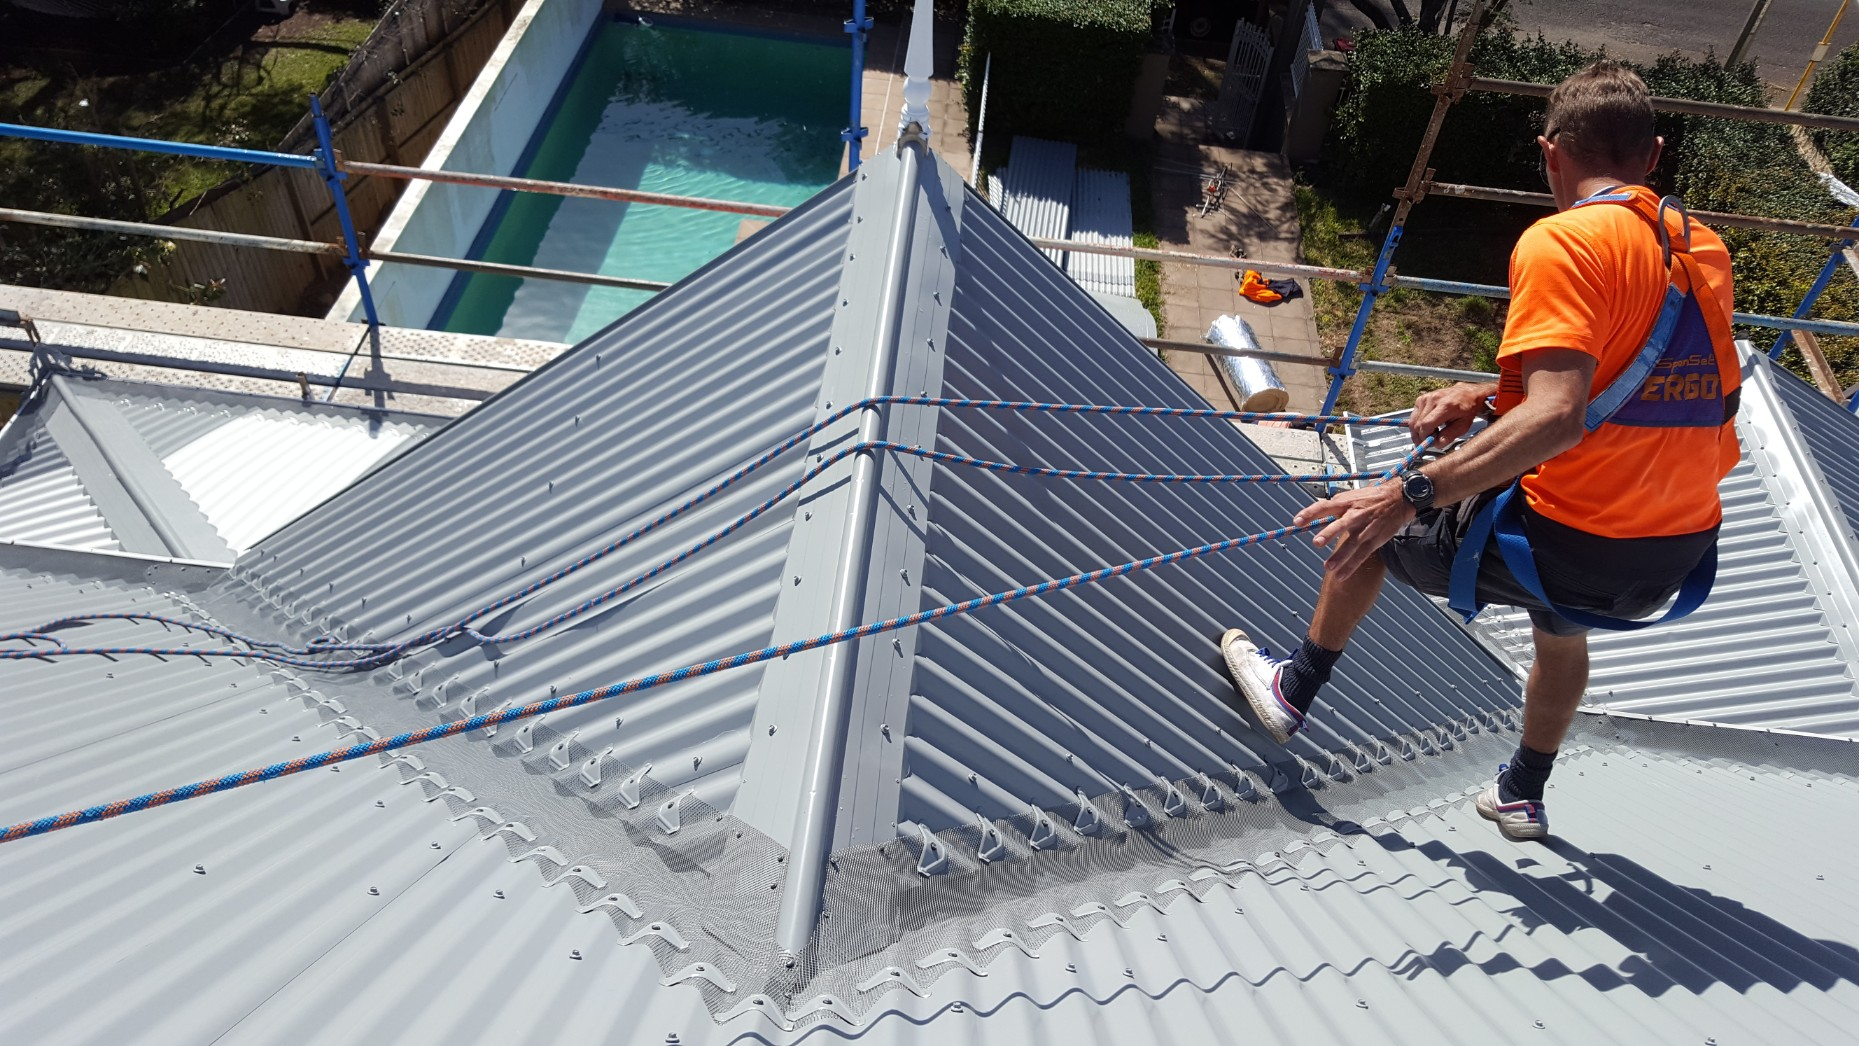 Gutter guard corro roof keeping safe